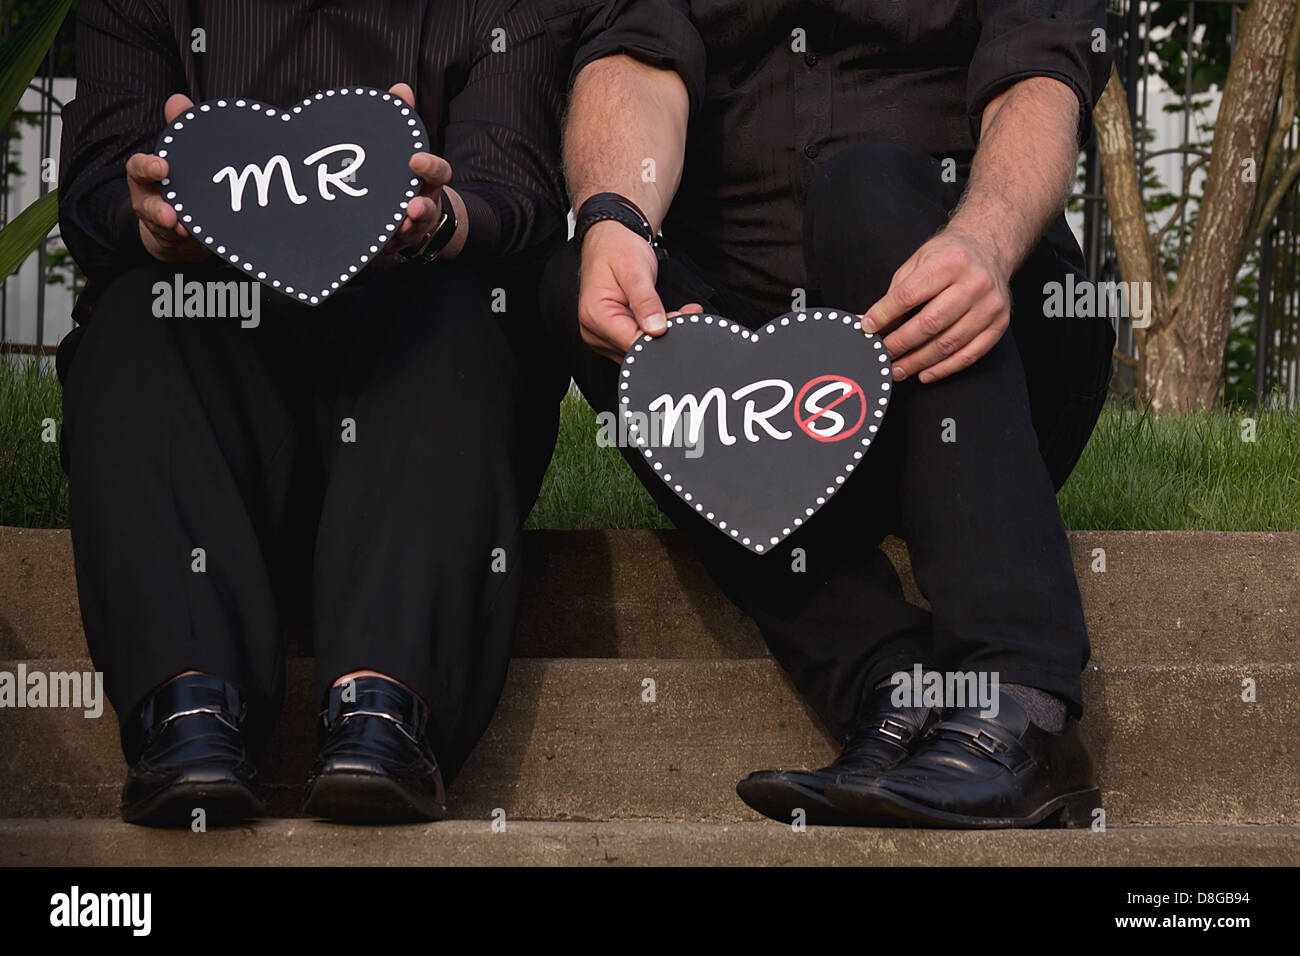 Homosexual couple holding Mr and Mrs heart-shaped signs. - Stock Image